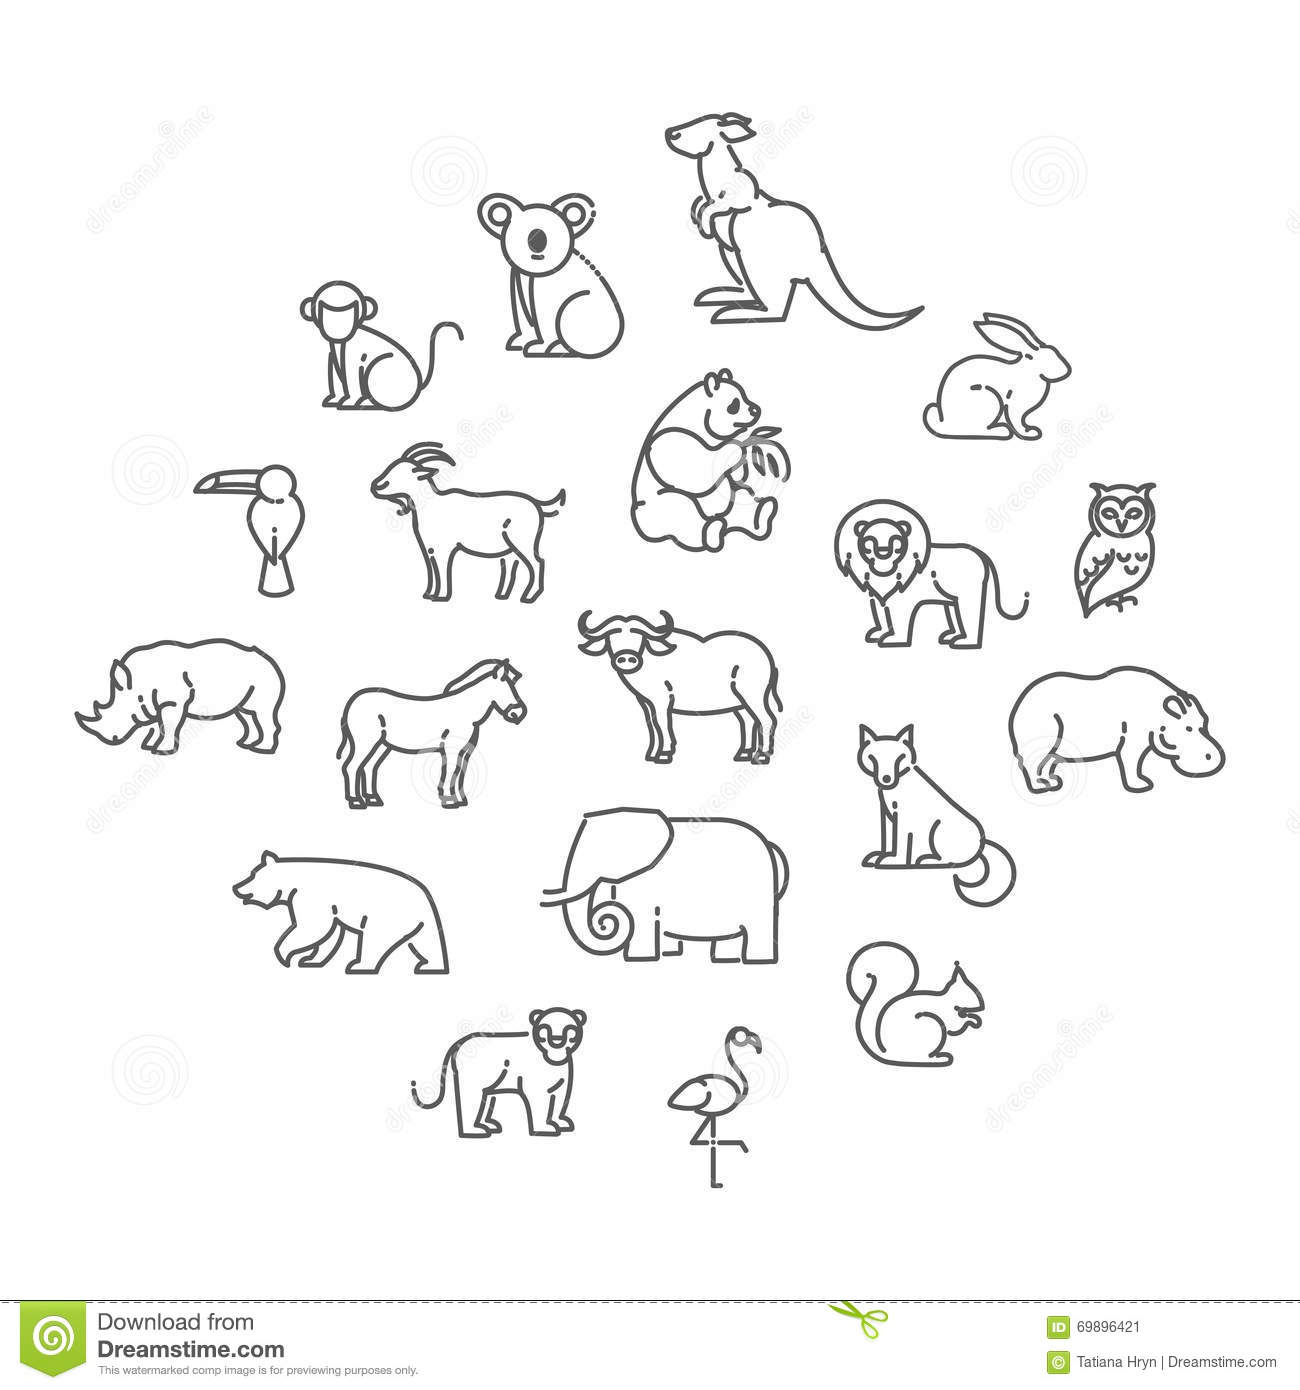 Zoo Line Art : Animal icons zoo stock vector illustration of